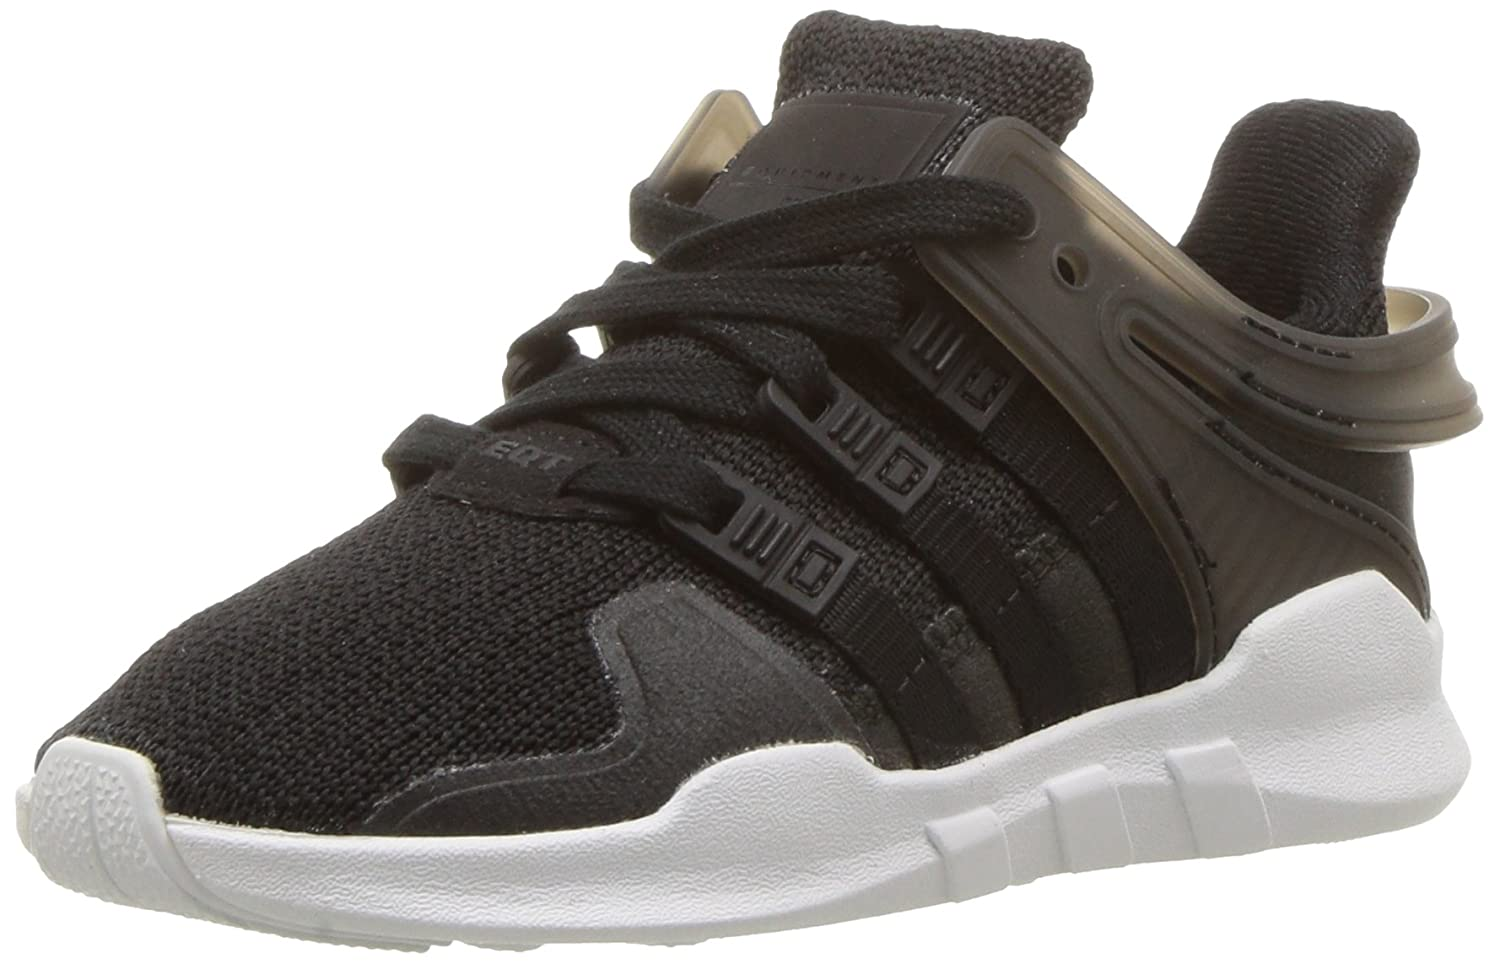 56b52a3bf7af57 adidas Originals Unisex-Child EQT Support ADV Shoe Sneakers  ADIDAS   Amazon.ca  Shoes   Handbags